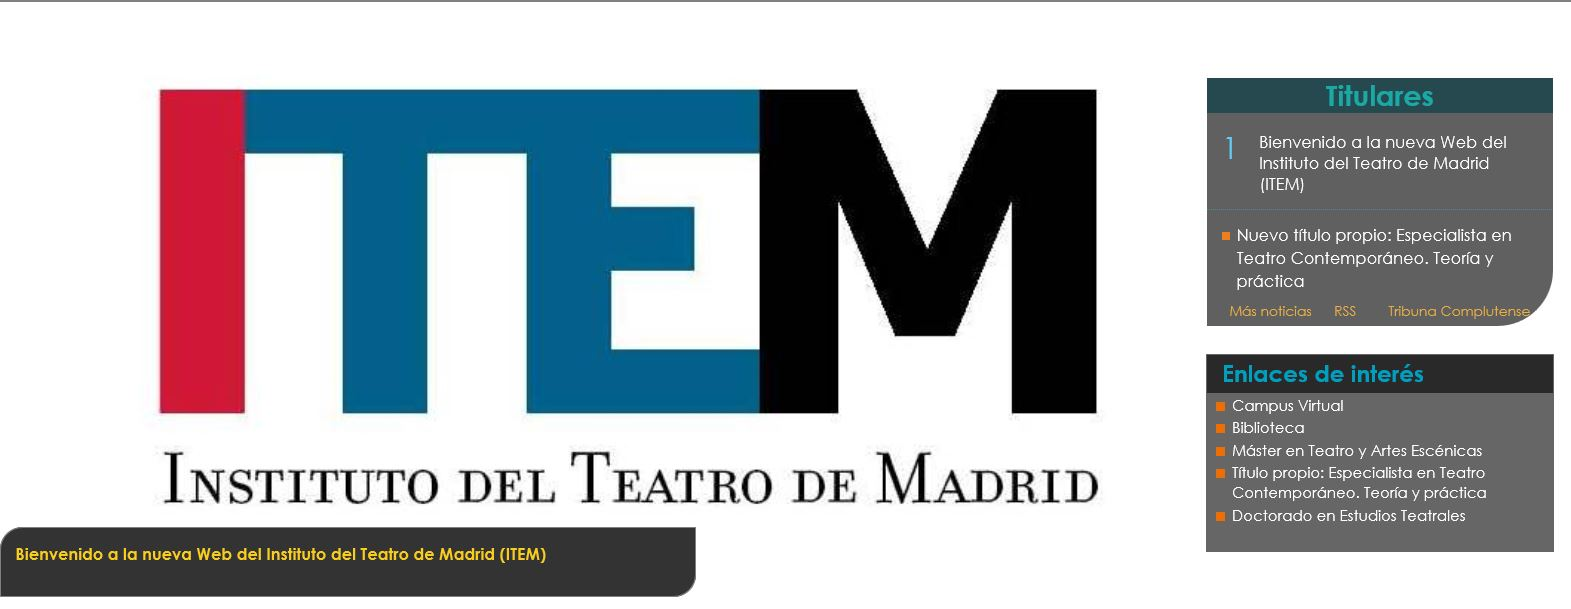 Instituto del Teatro de Madrid (ITEM)